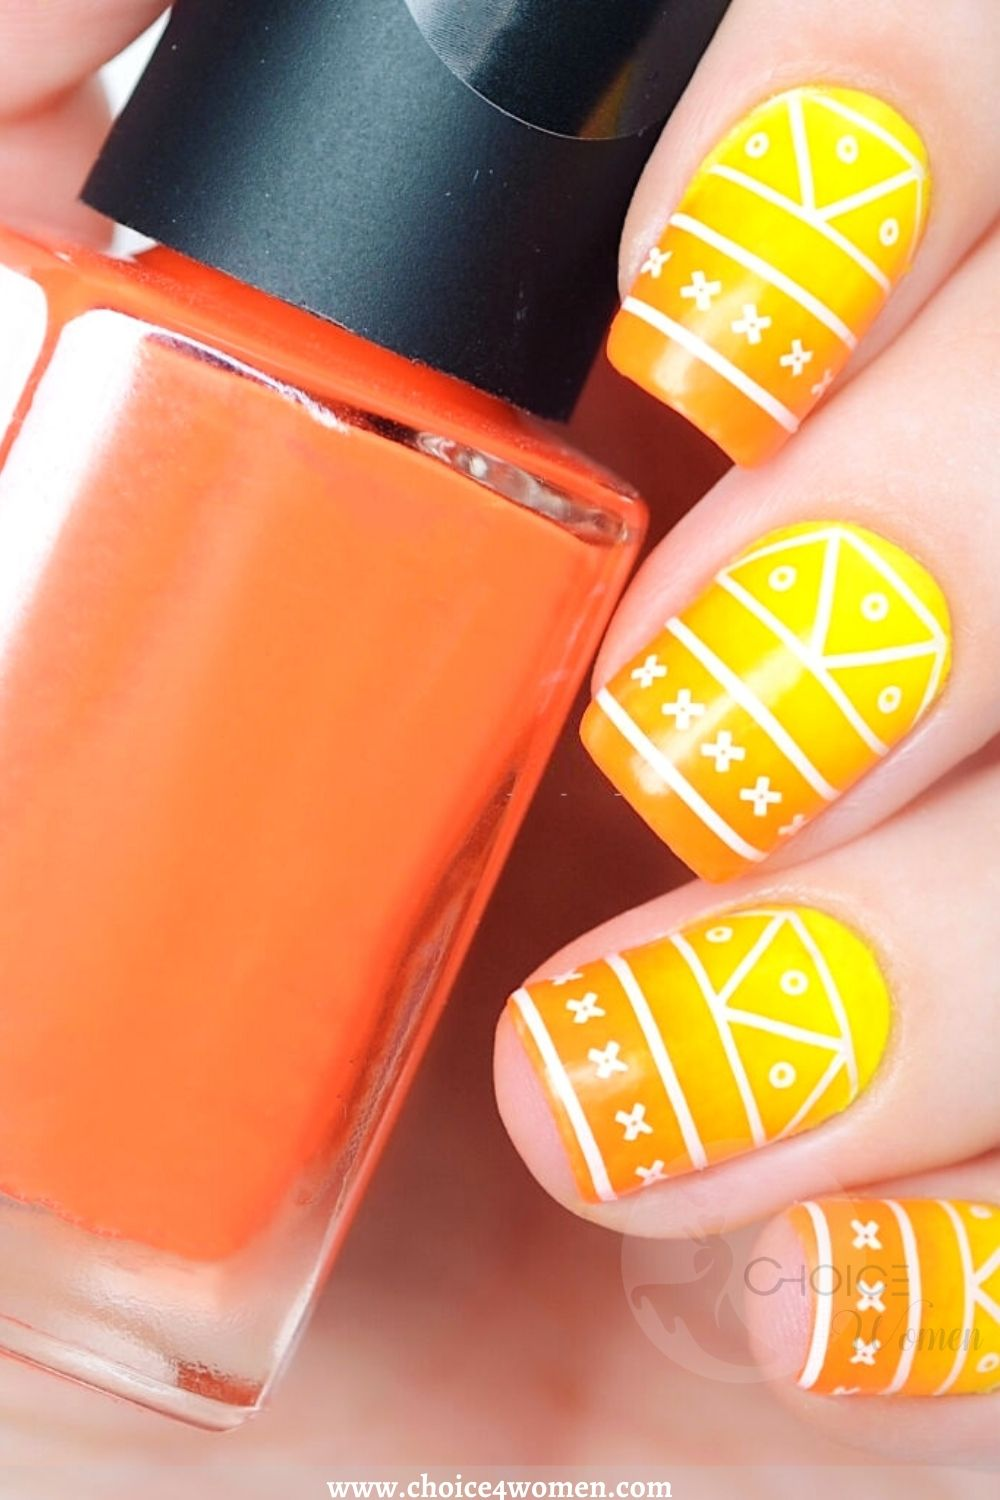 Simple Nail Designs in white and orange